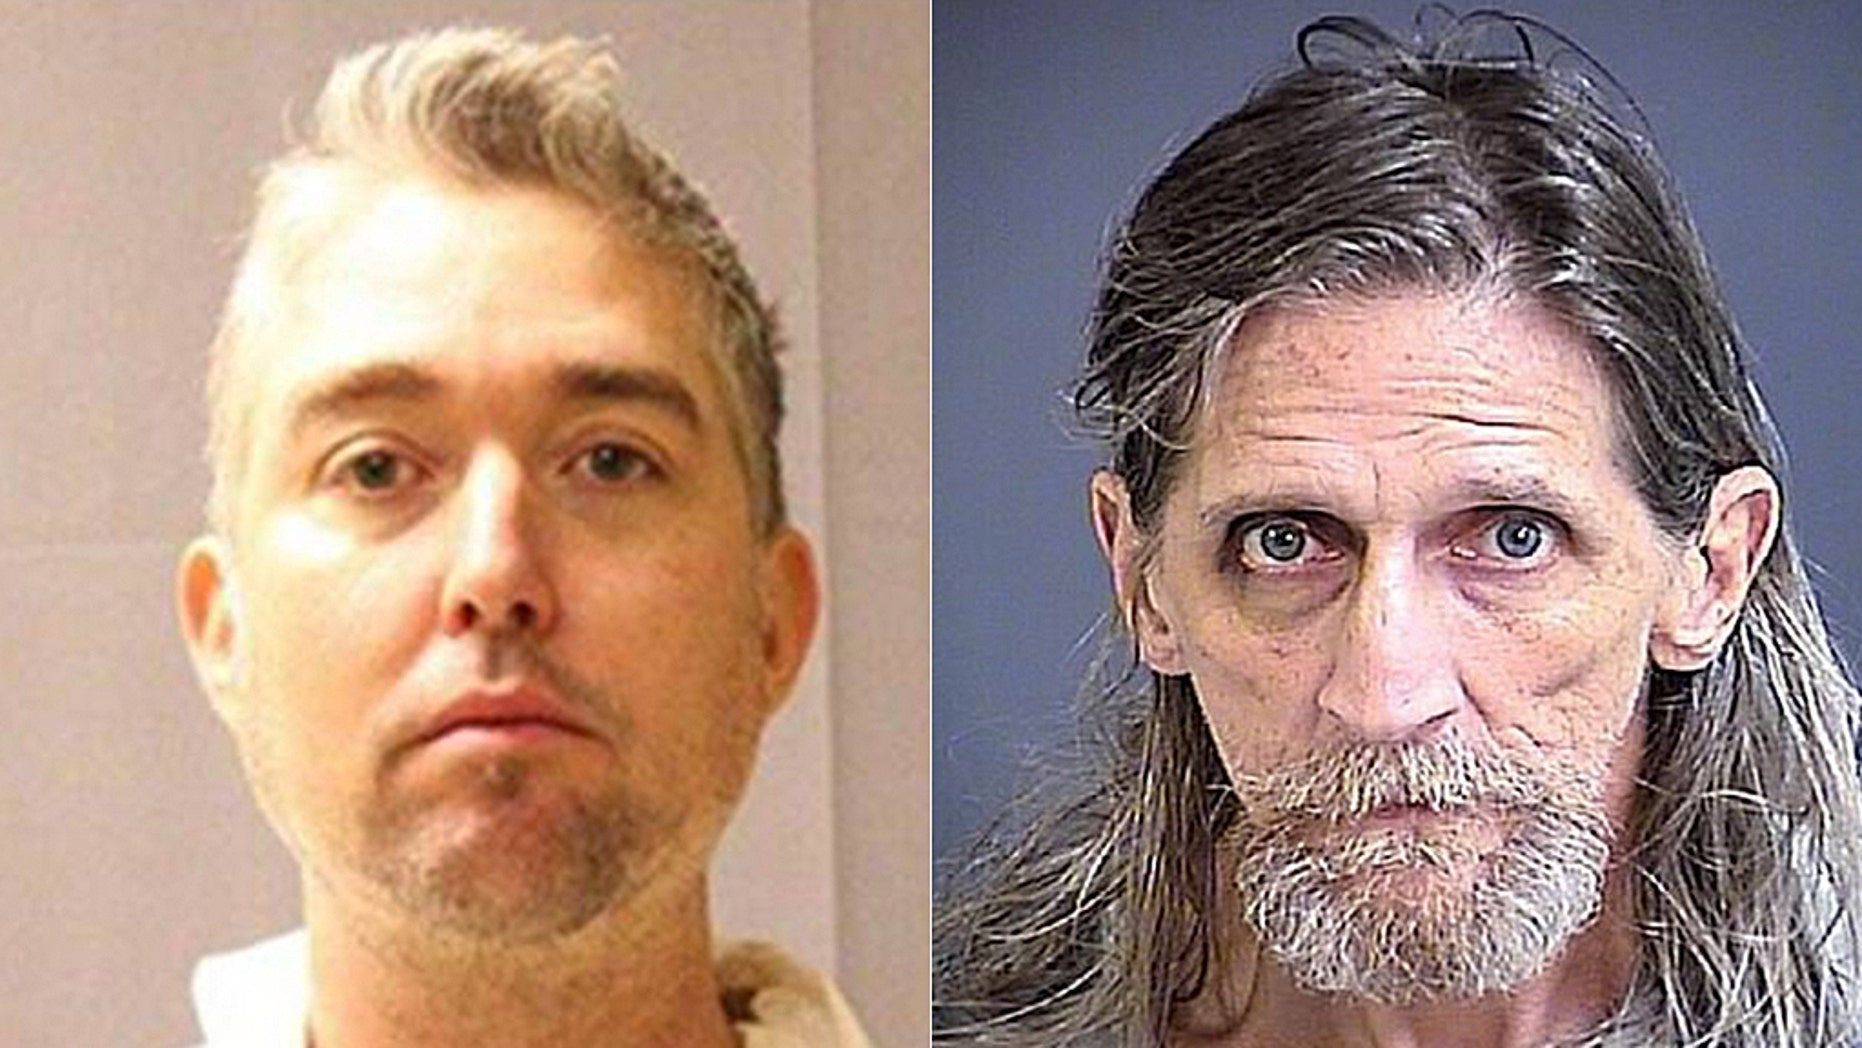 In April federal prosecutors in Orlando, Fla., obtained a conviction against another Dark Web fentanyl distributor, Jeremey Achey (left); In June, Robert Mansfield (right), age 61, of Ladson, S.C., was sentenced to 20 years in prison for distribution of fentanyl resulting in the death of a man in December 2016